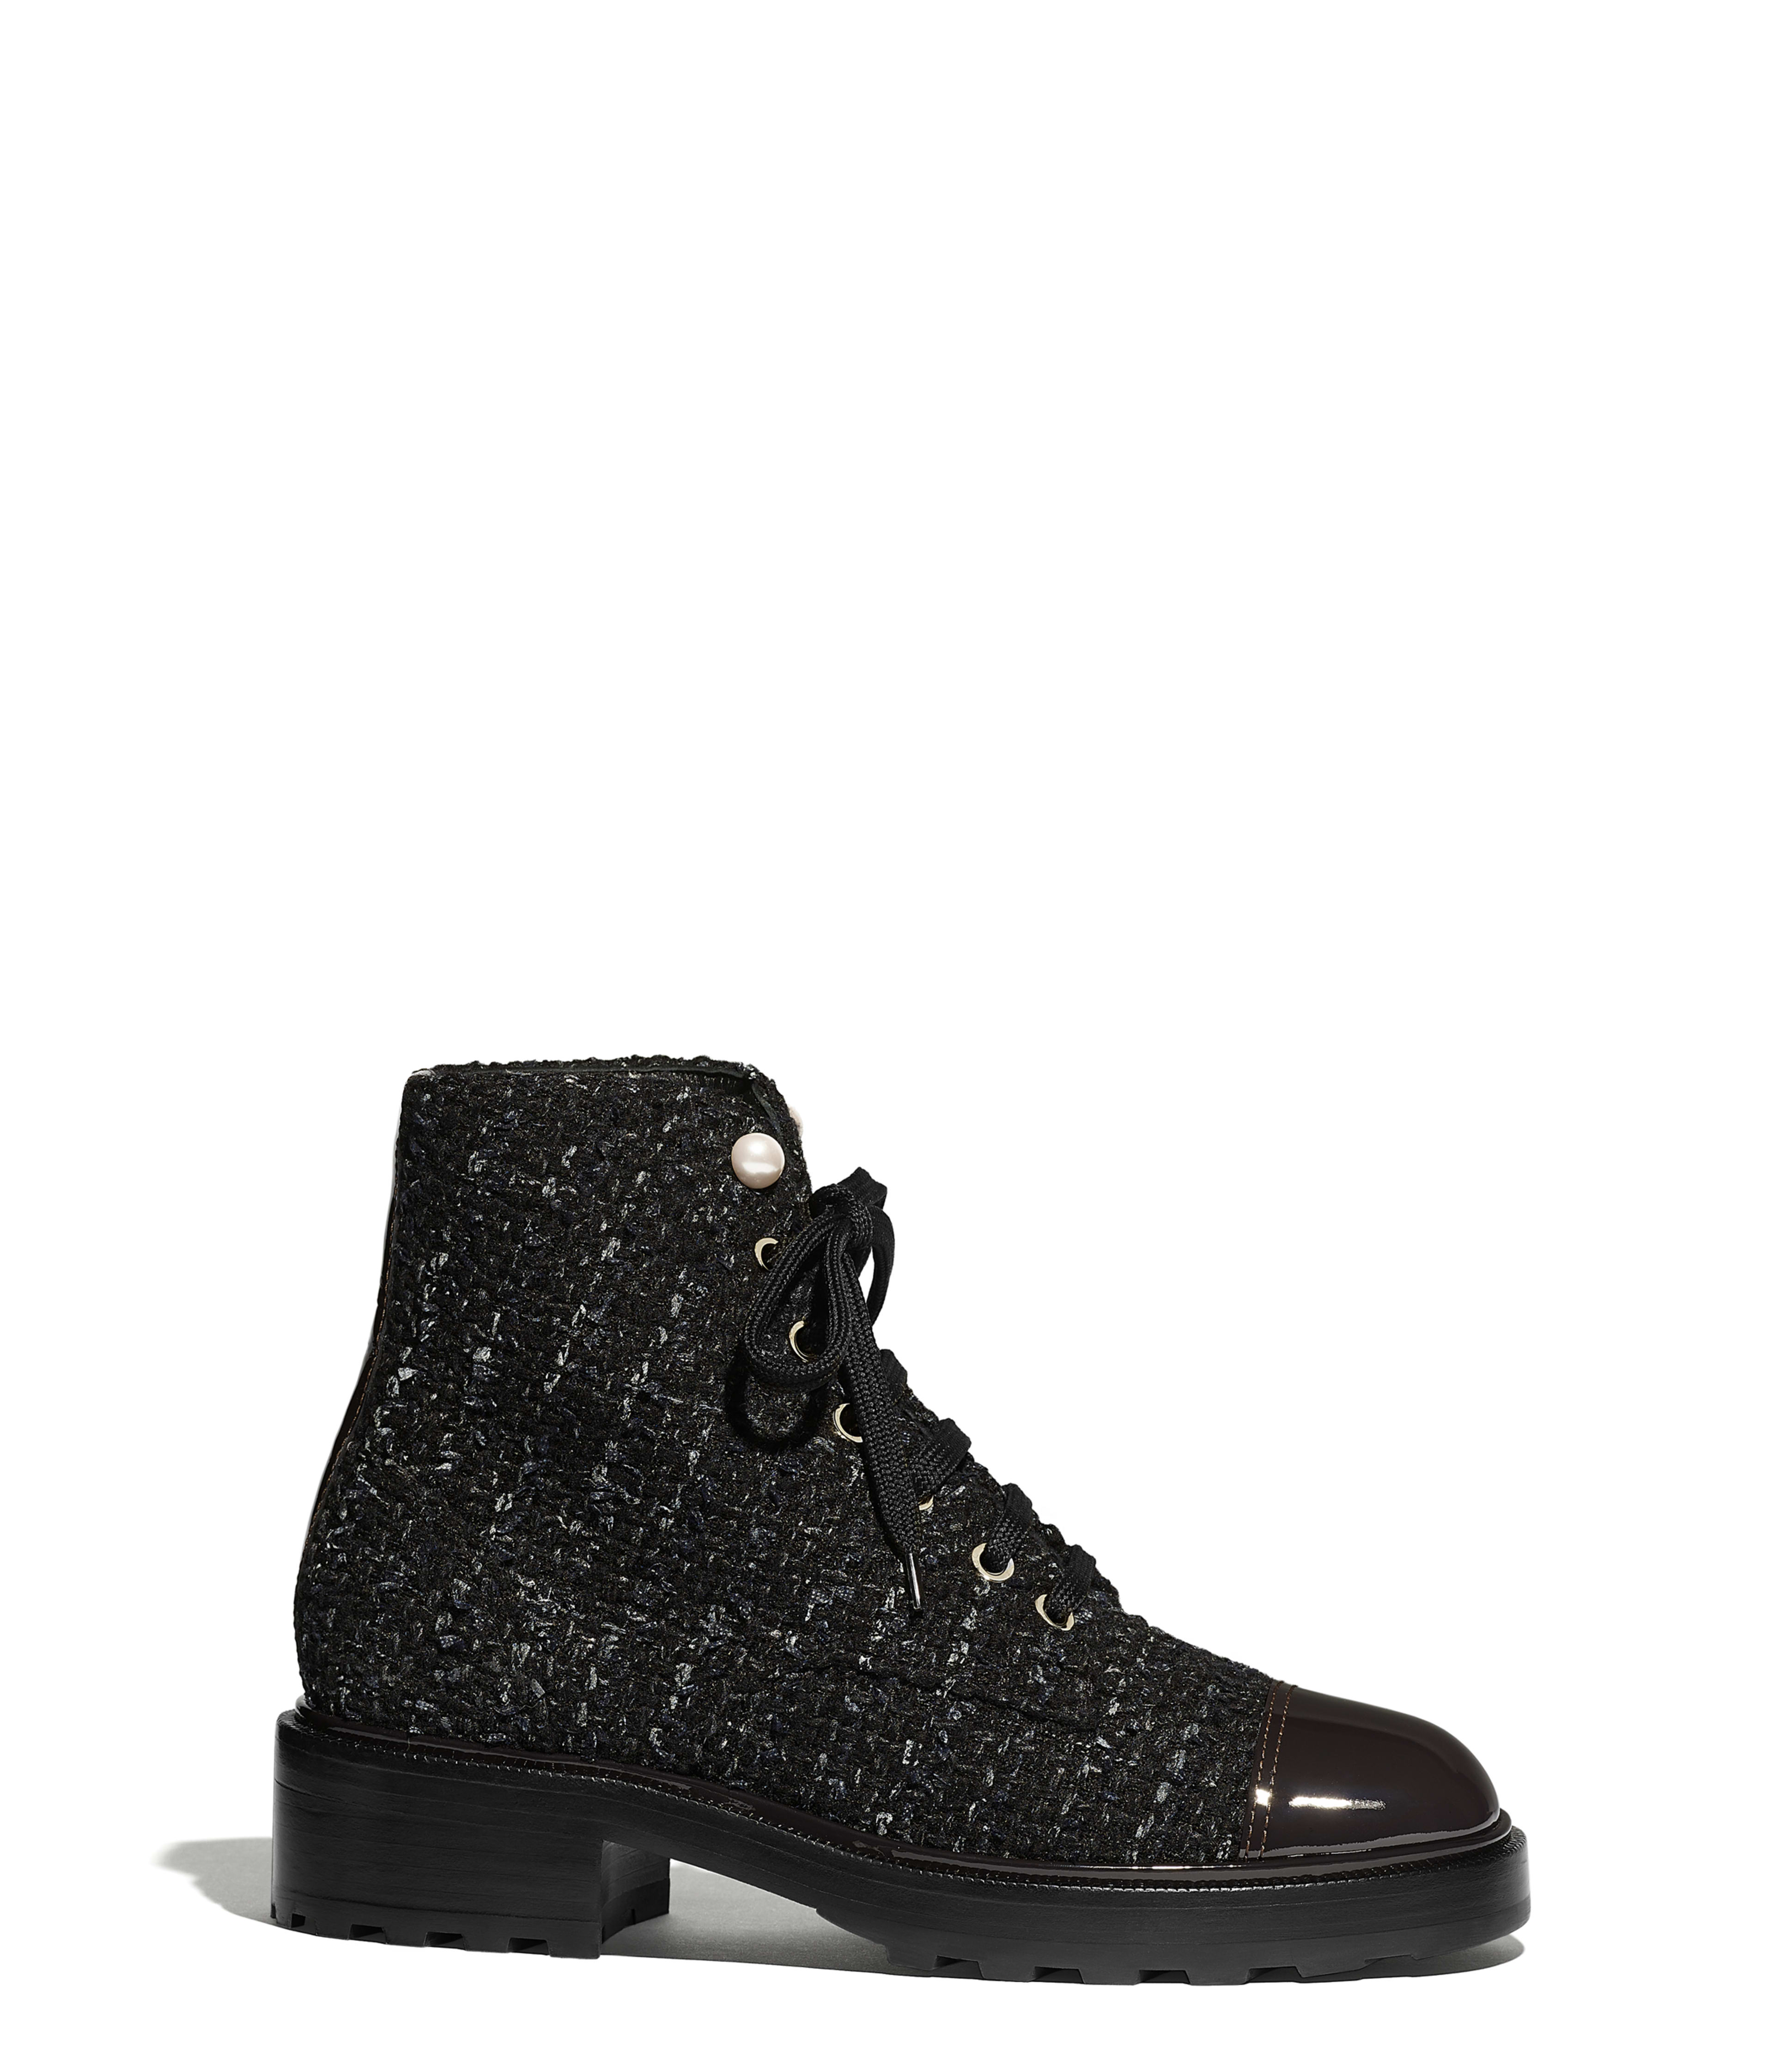 e6eae0514dc29 Ankle Boots Tweed & Patent Calfskin, Black, Blue & Gray Ref.  G35154Y53934K1842